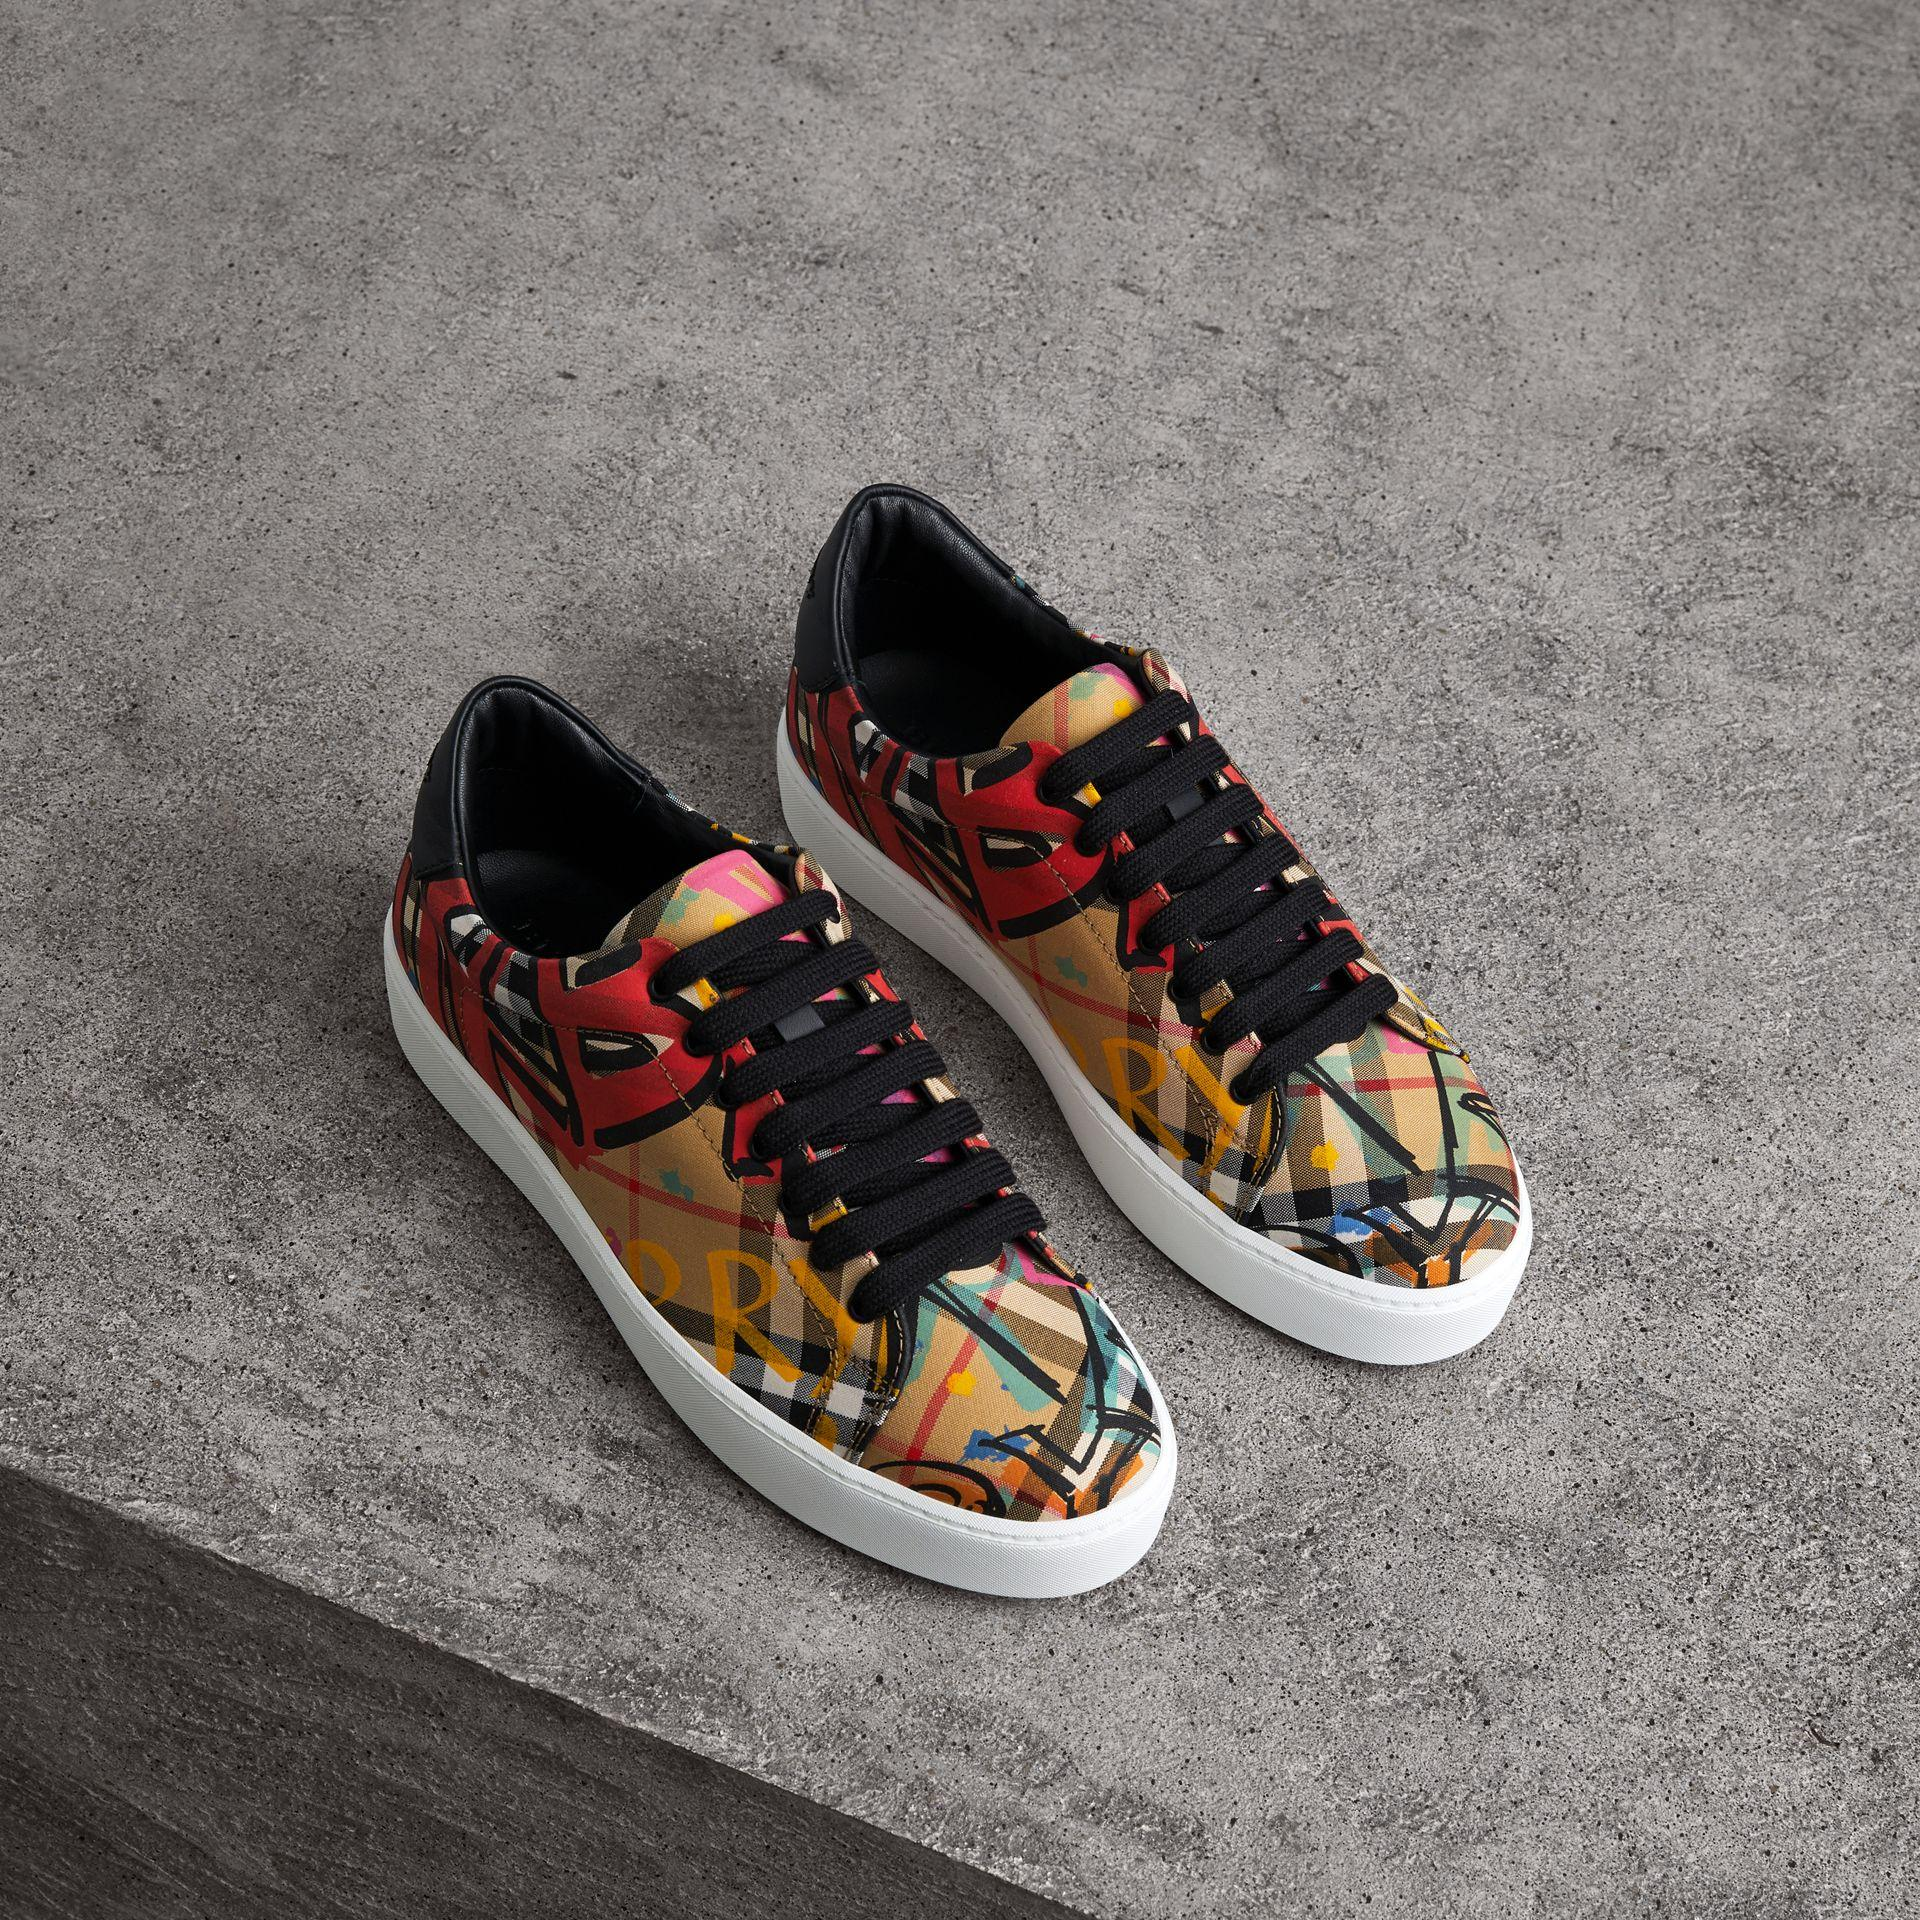 Burberry Women's Westford Graffiti Logo Print Vintage Check Lace Up Sneakers In Antique Yellow